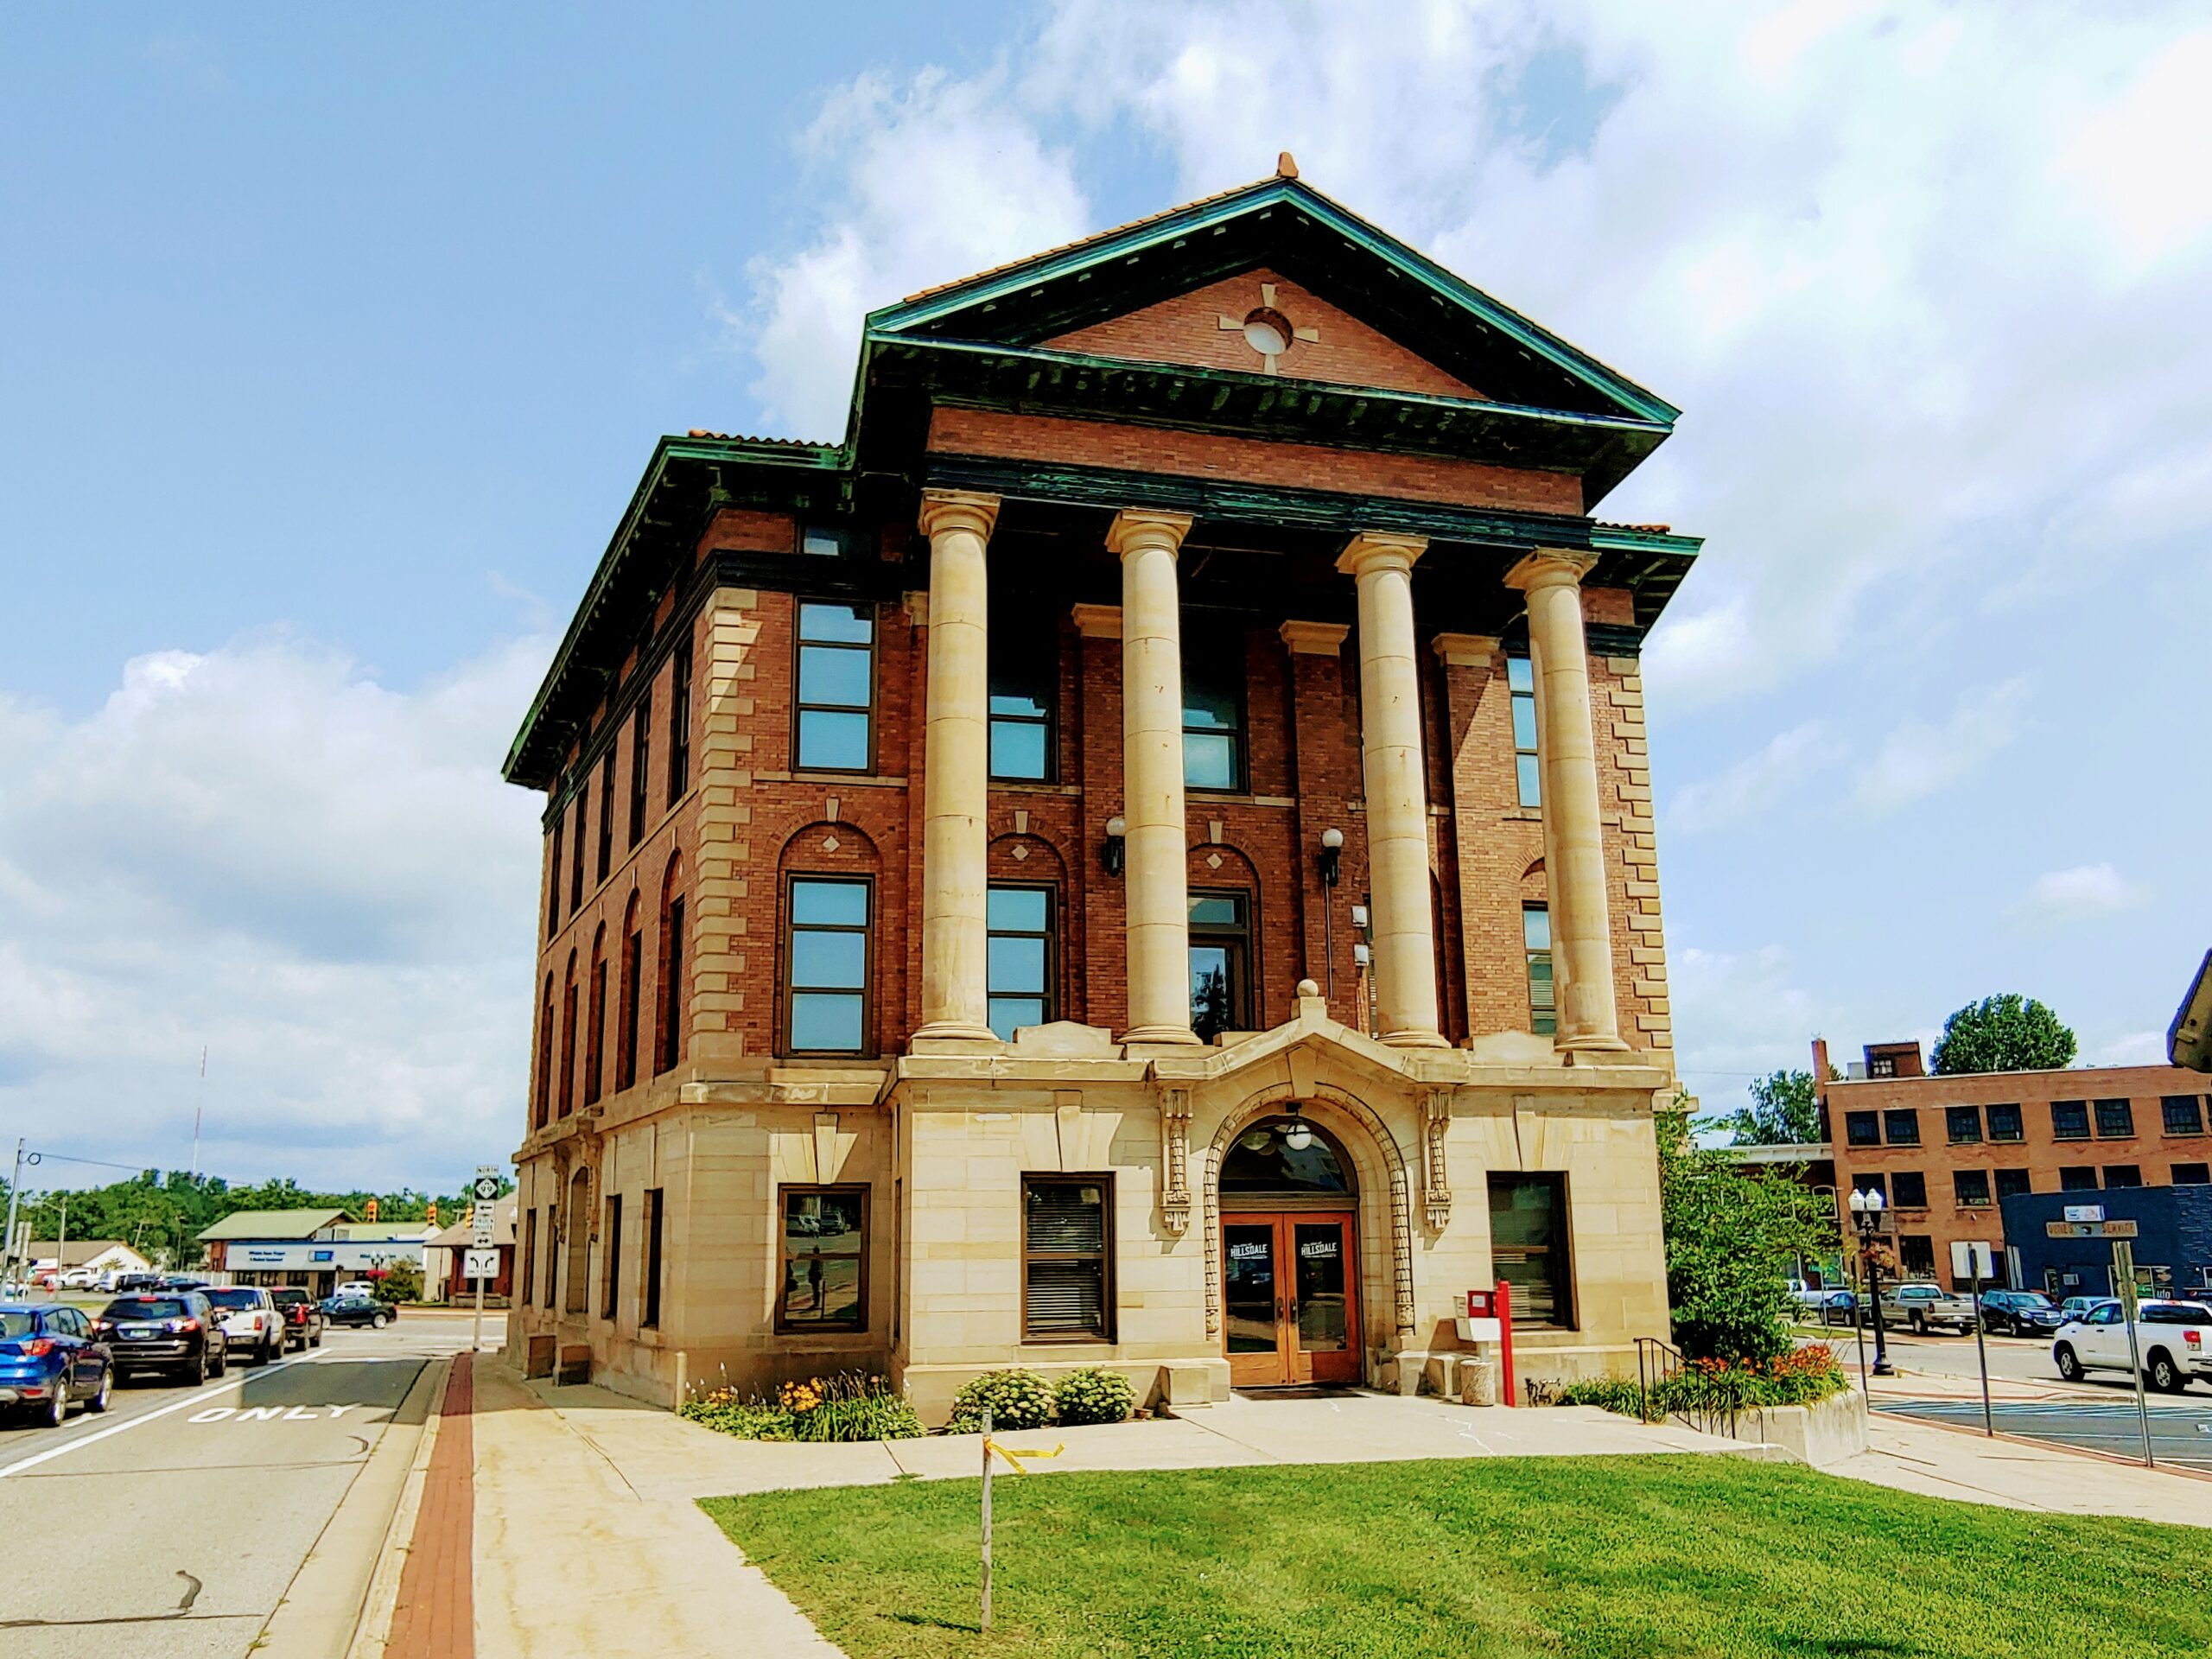 Hillsdale, Michigan To Consider Outlawing Abortion Within Their City Limits